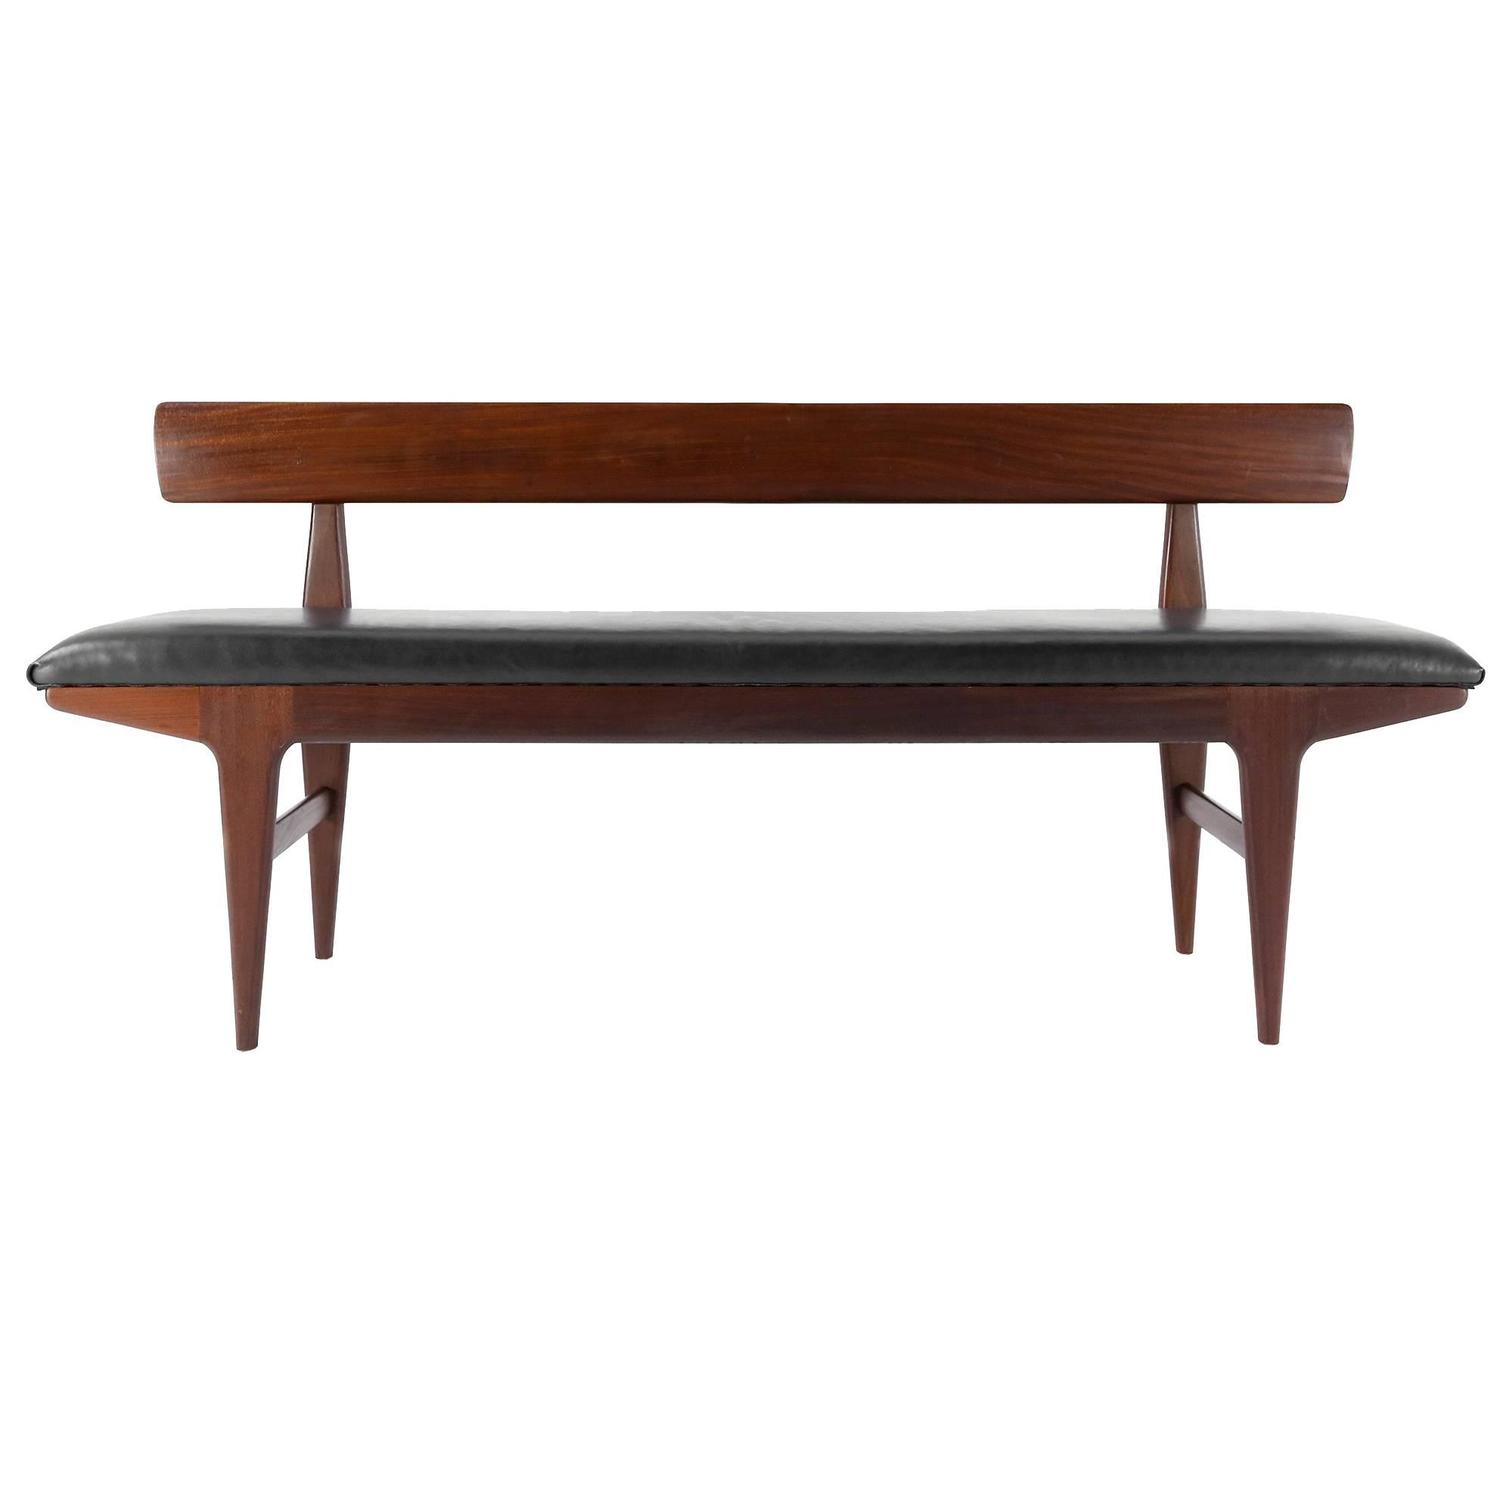 Jens risom floating bench for sale at 1stdibs - Danish Bench In Solid Afrormosia With Leather Seat